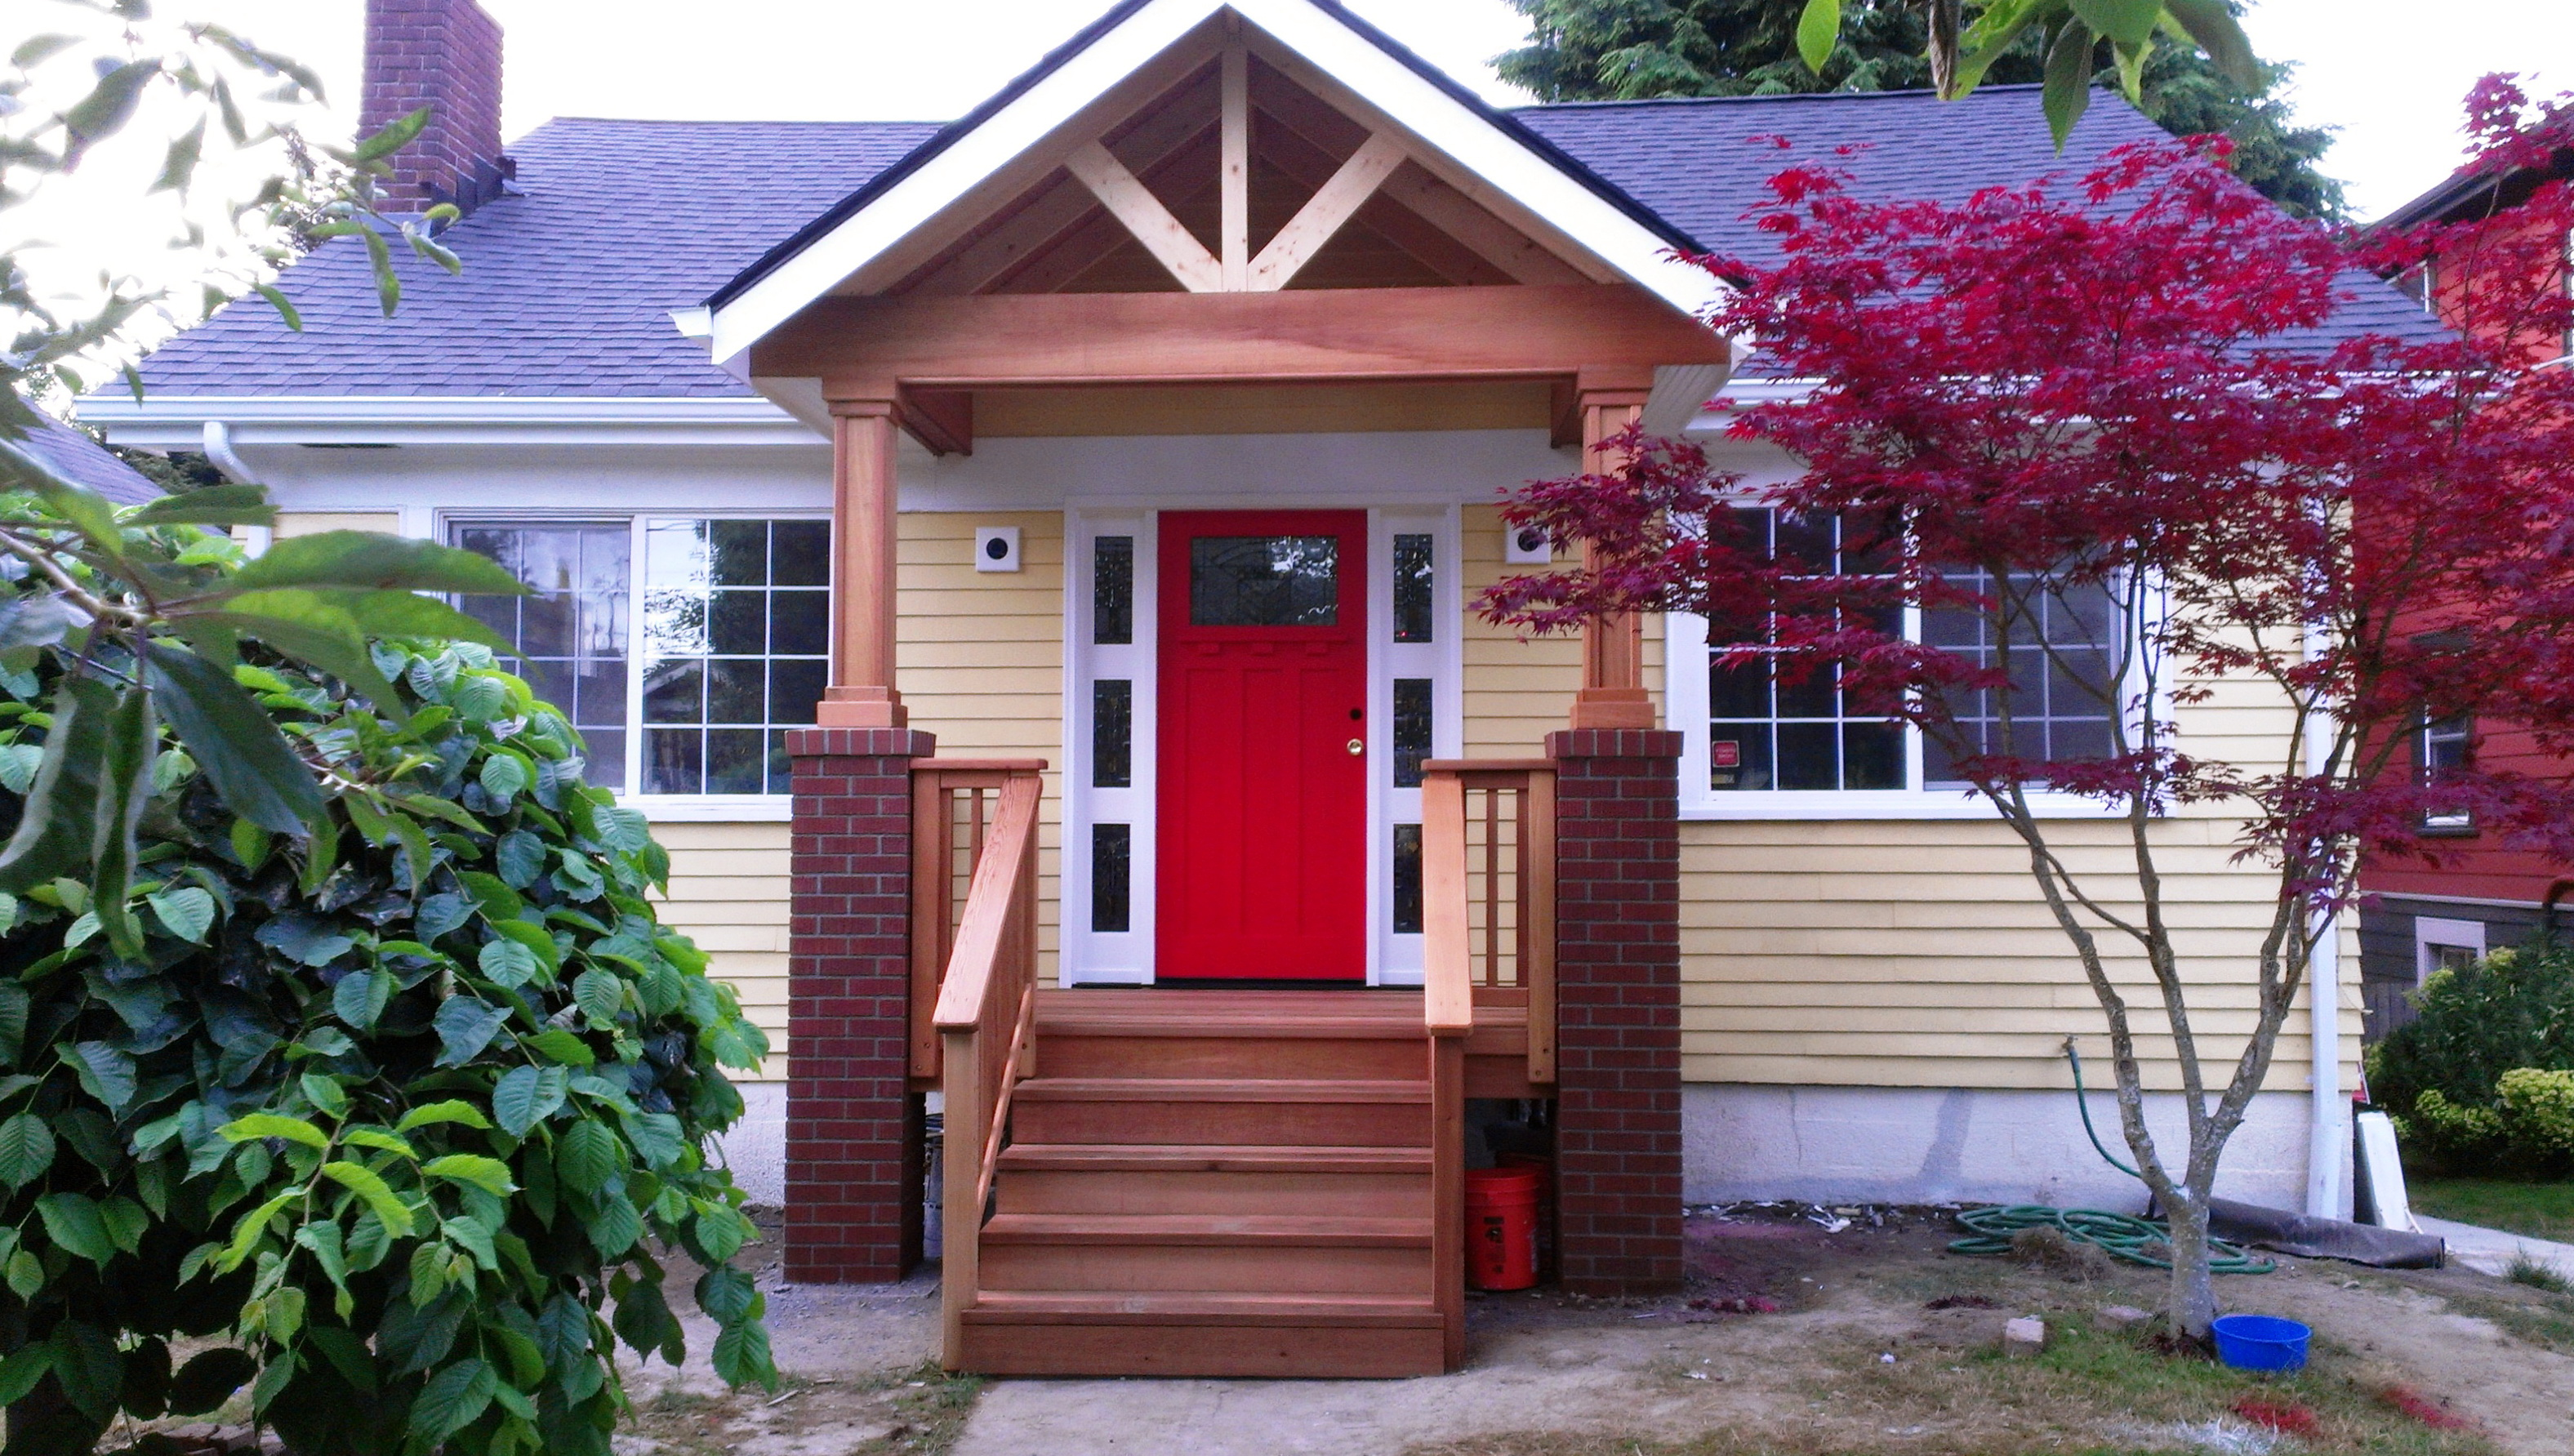 Add Front Porch To House